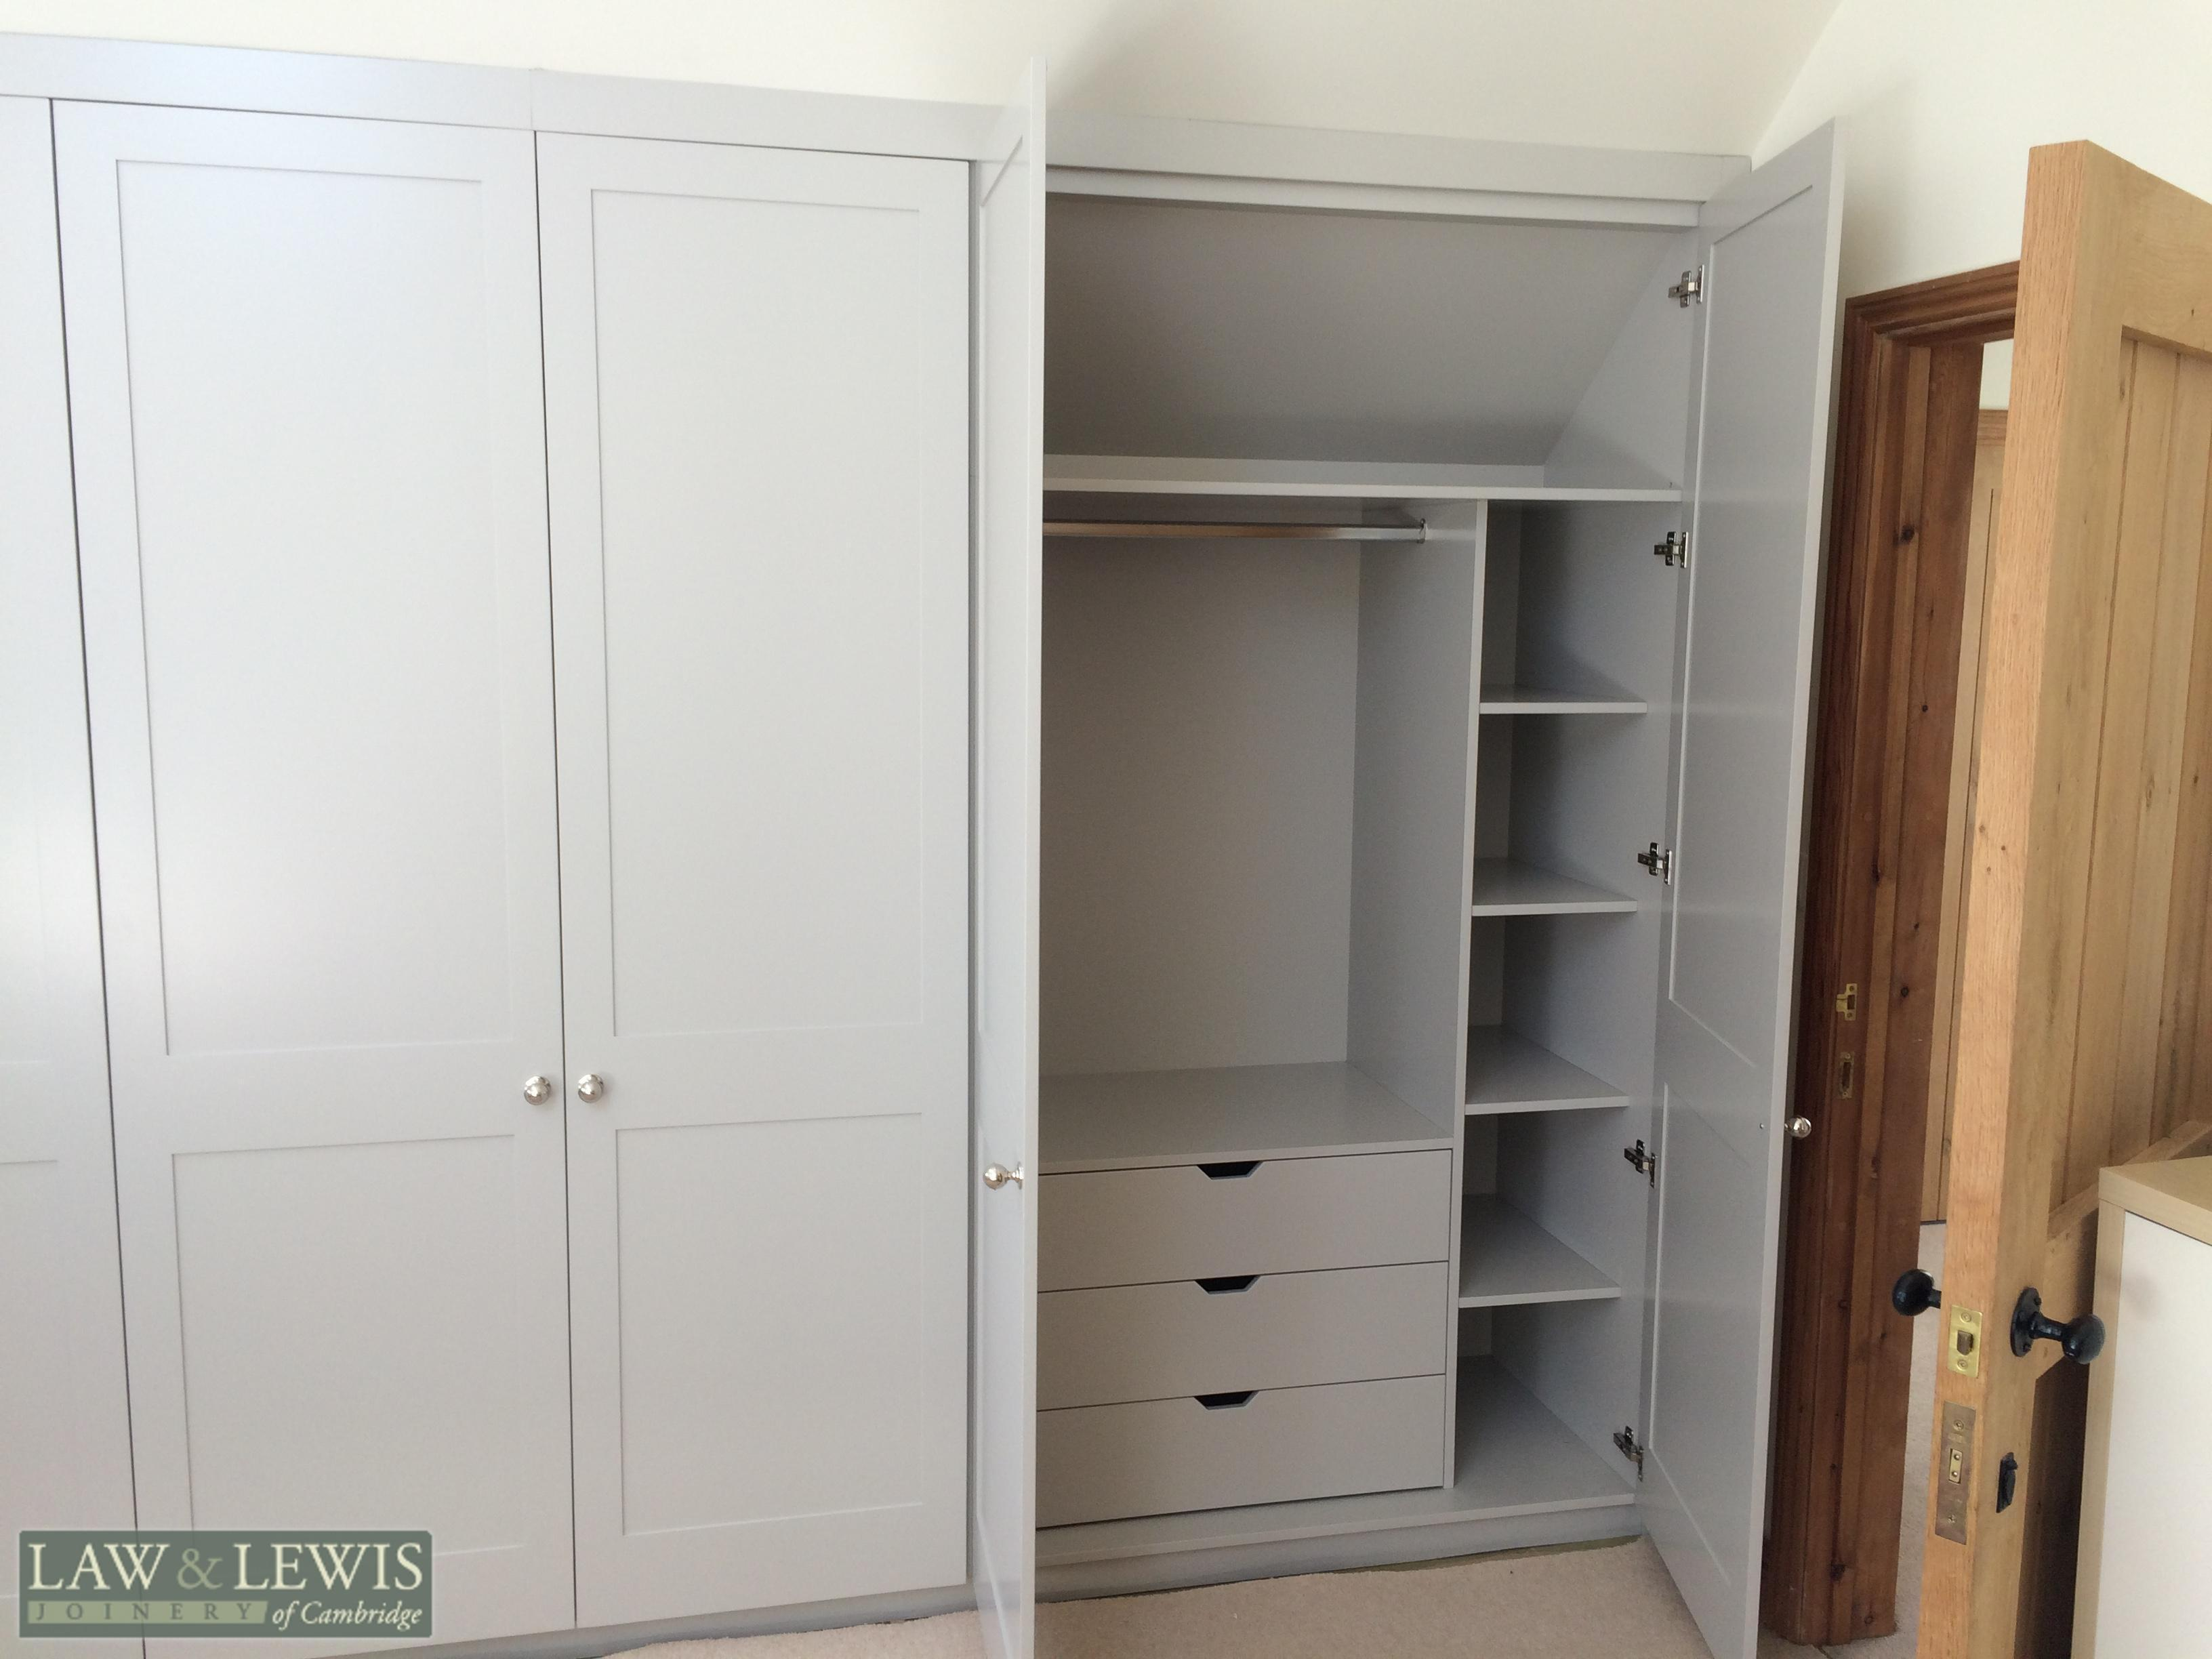 Law And Lewis Joinery Of Cambridge Products Wardrobes